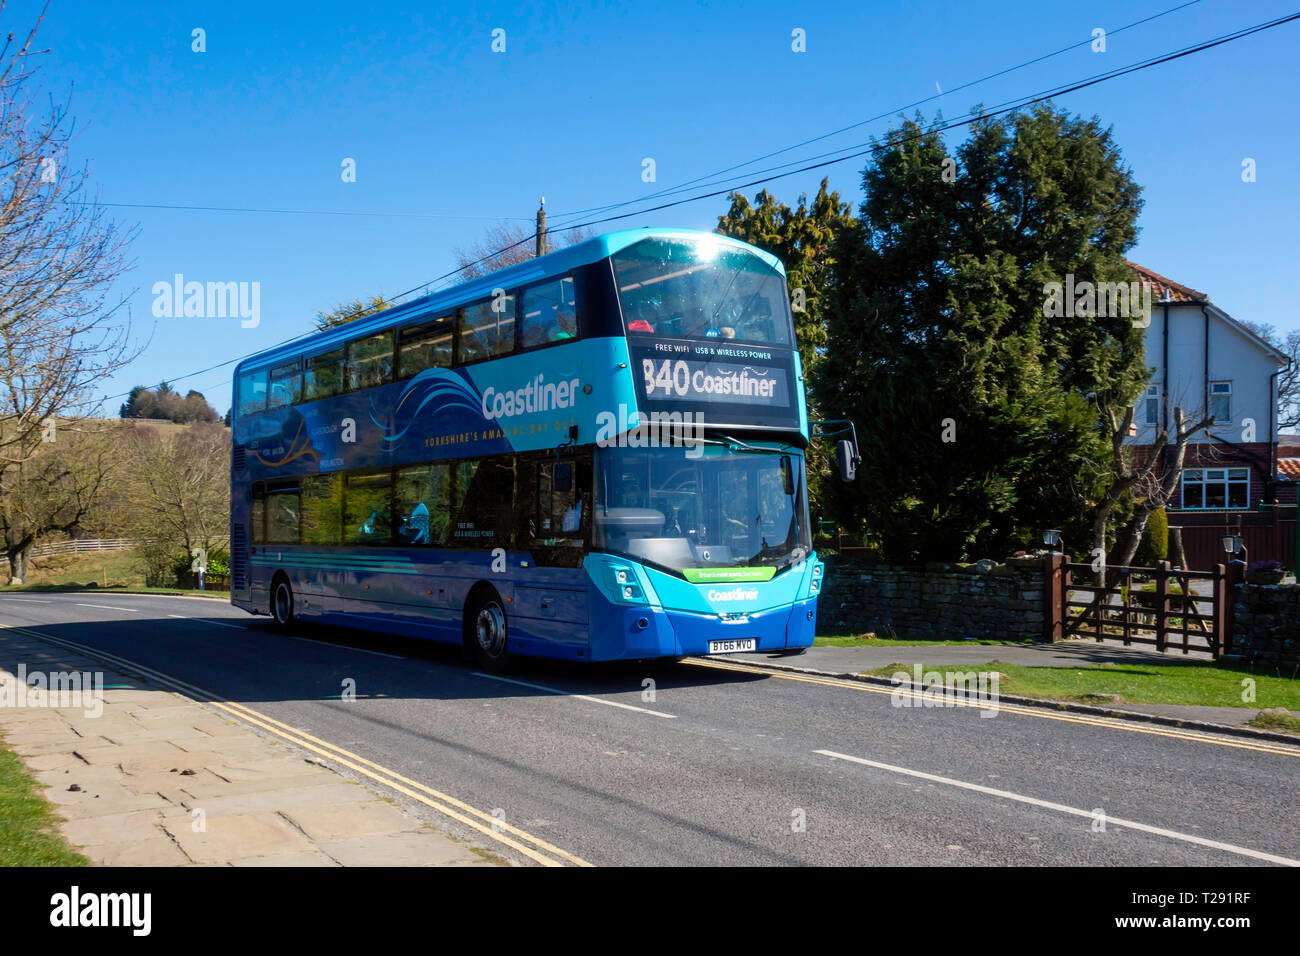 Yorkshire Coastliner bus service from Leeds and York to coastal towns Scarborough Whitby Filey and Bridlington, passing through Goathland on the Moors Stock Photo